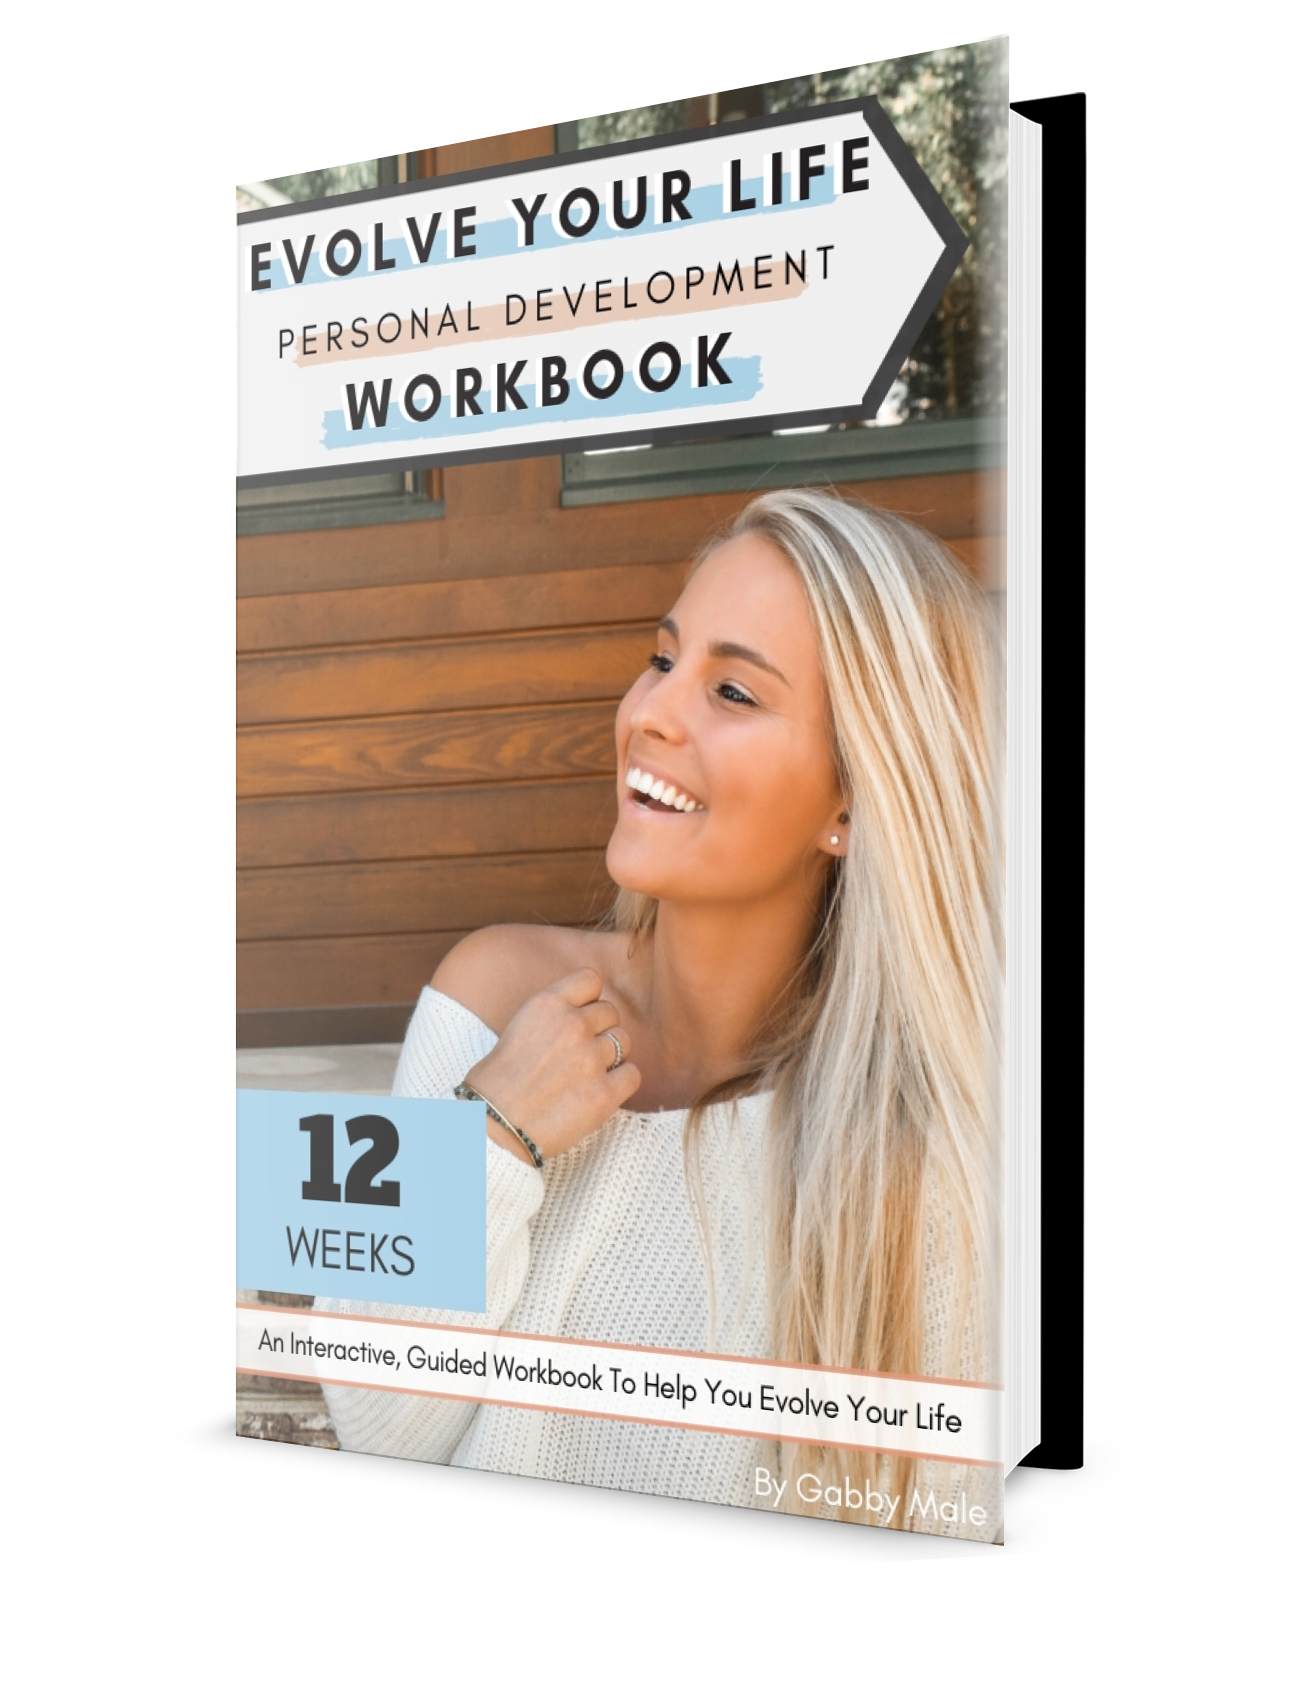 evolve your life personal development workbook by gabby male